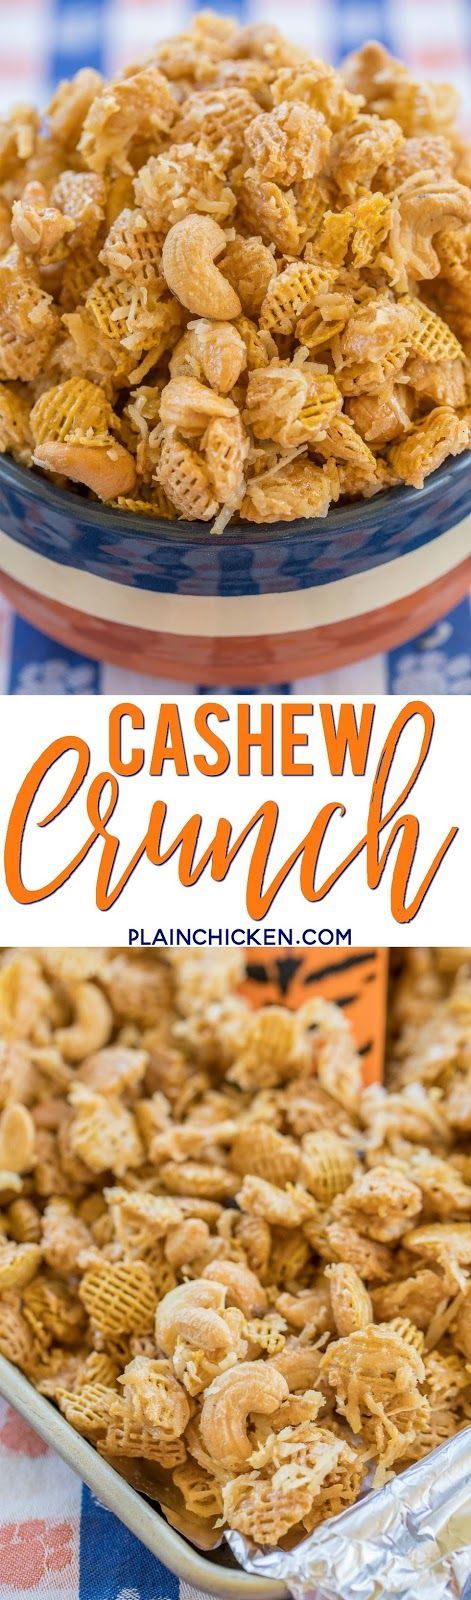 Cashew Crunch recipe - Cashews, Coconut and Crispix tossed in a sweet brown sugar syrup. Makes a ton.